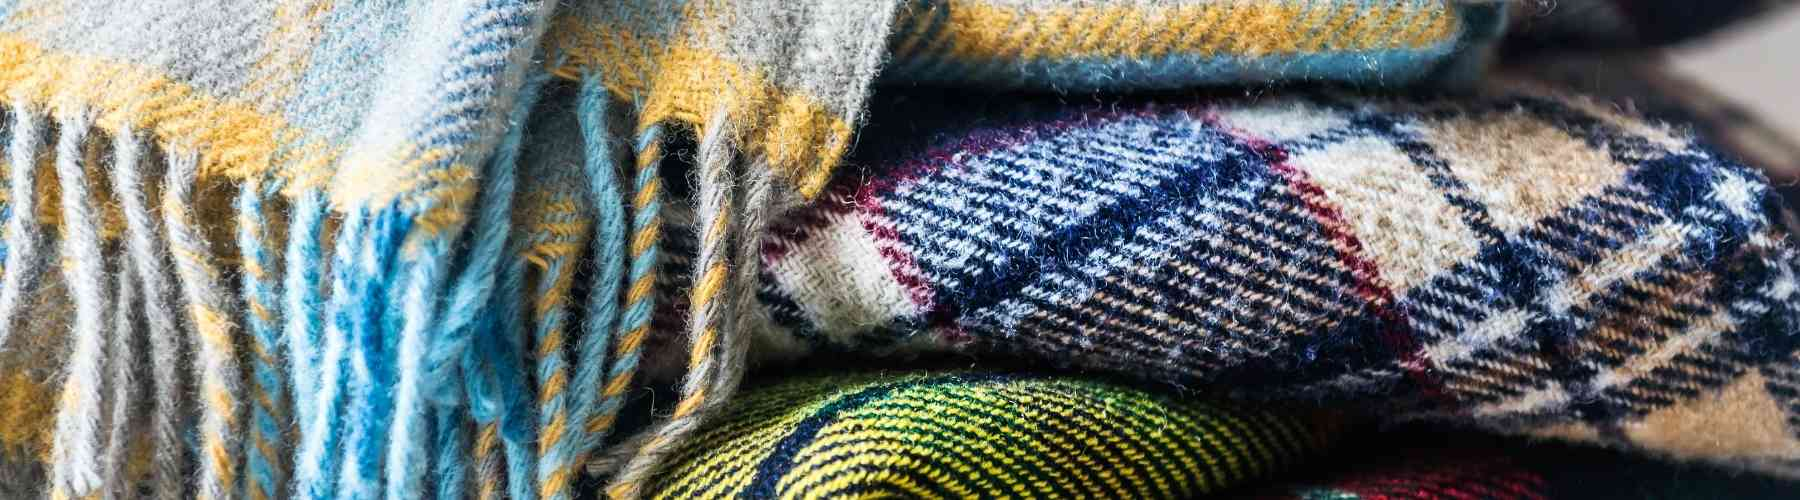 Crafts to Make and Sell - Blankets